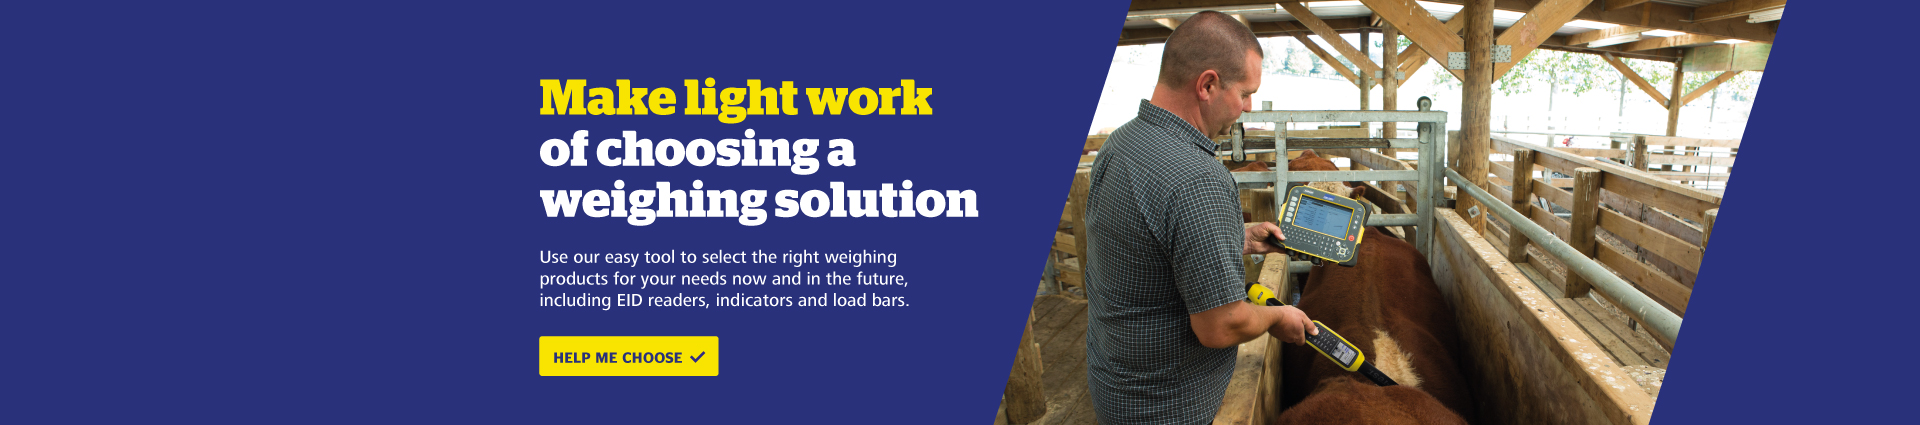 Try our weighing solution tool